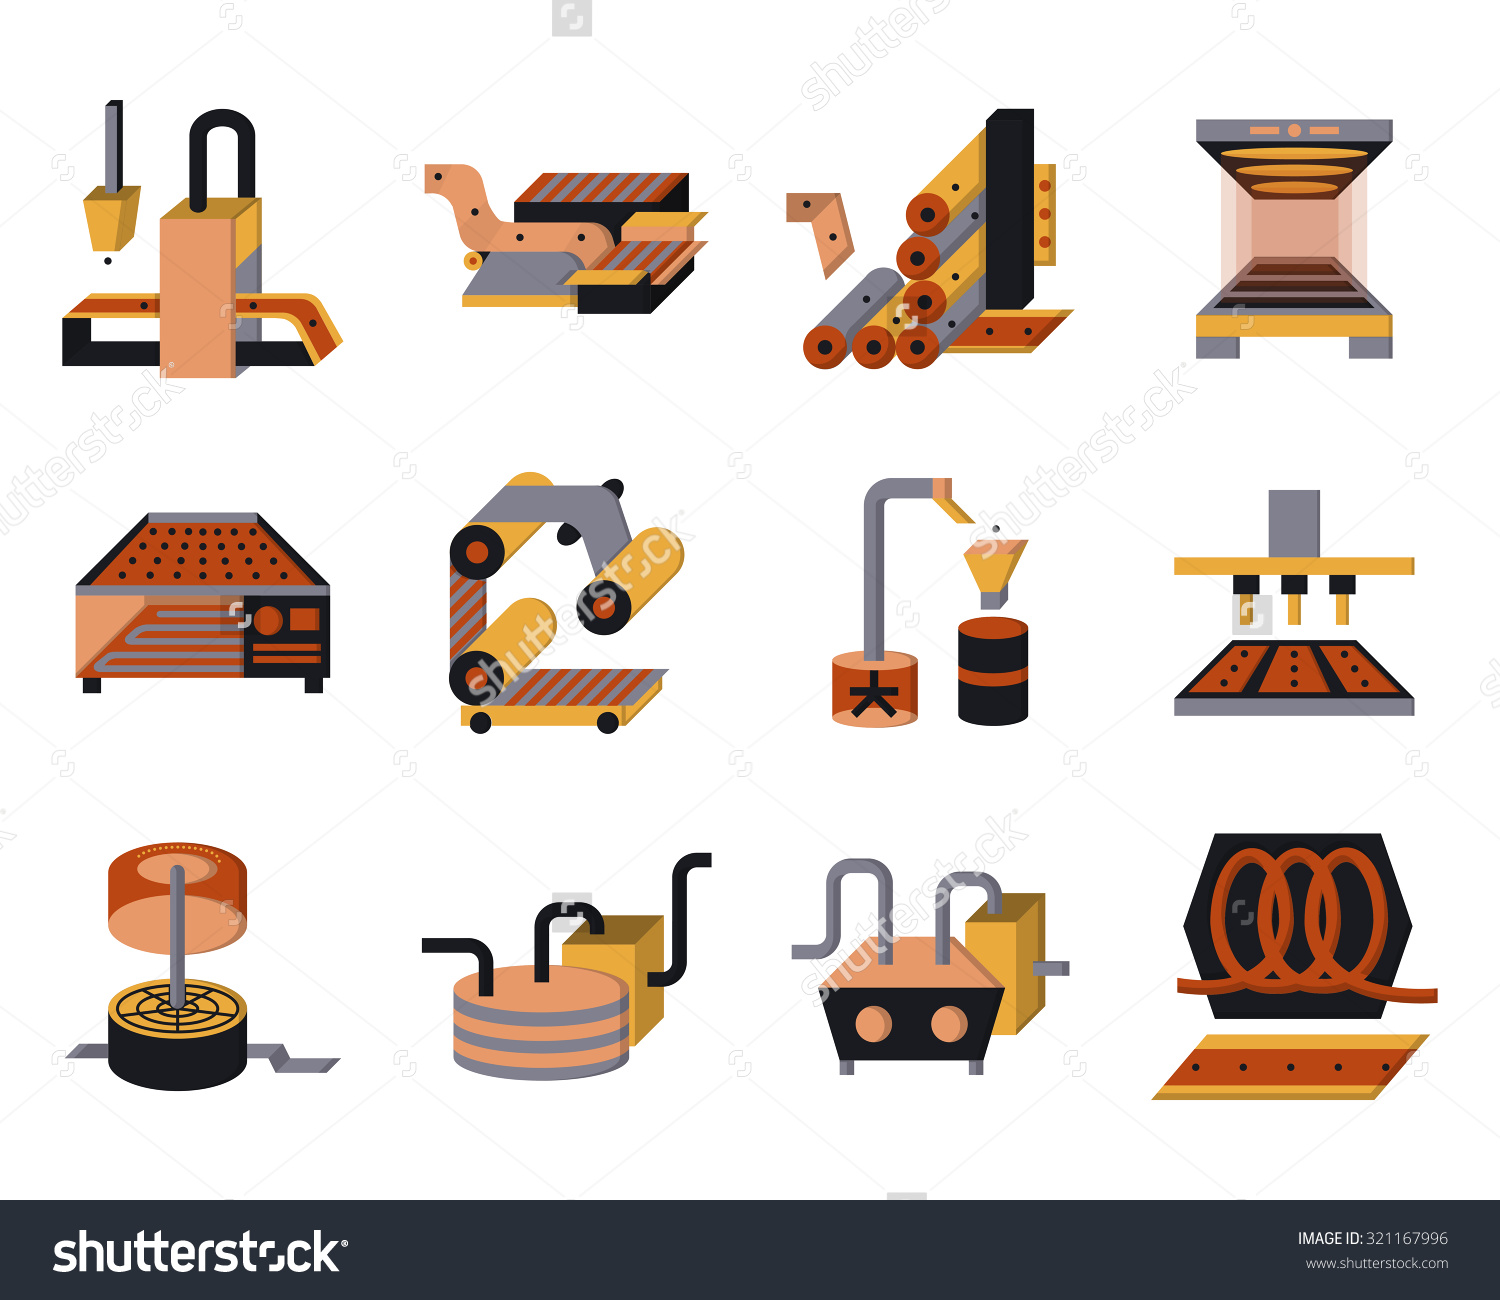 Food Processing Clipart.